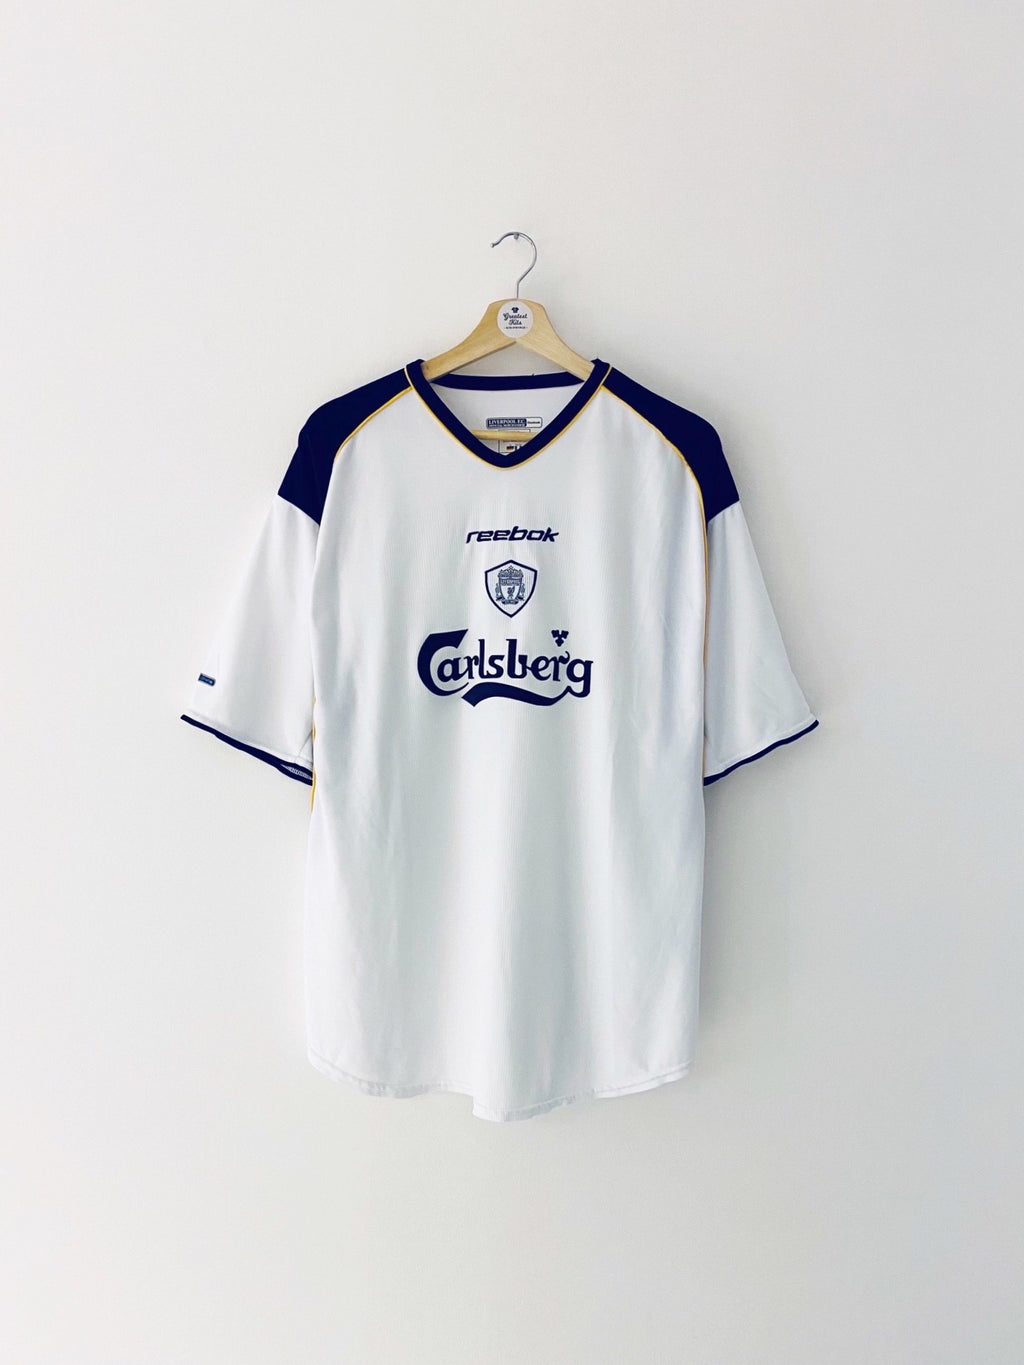 2001/03 Liverpool Away Shirt (XL) 8.5/10